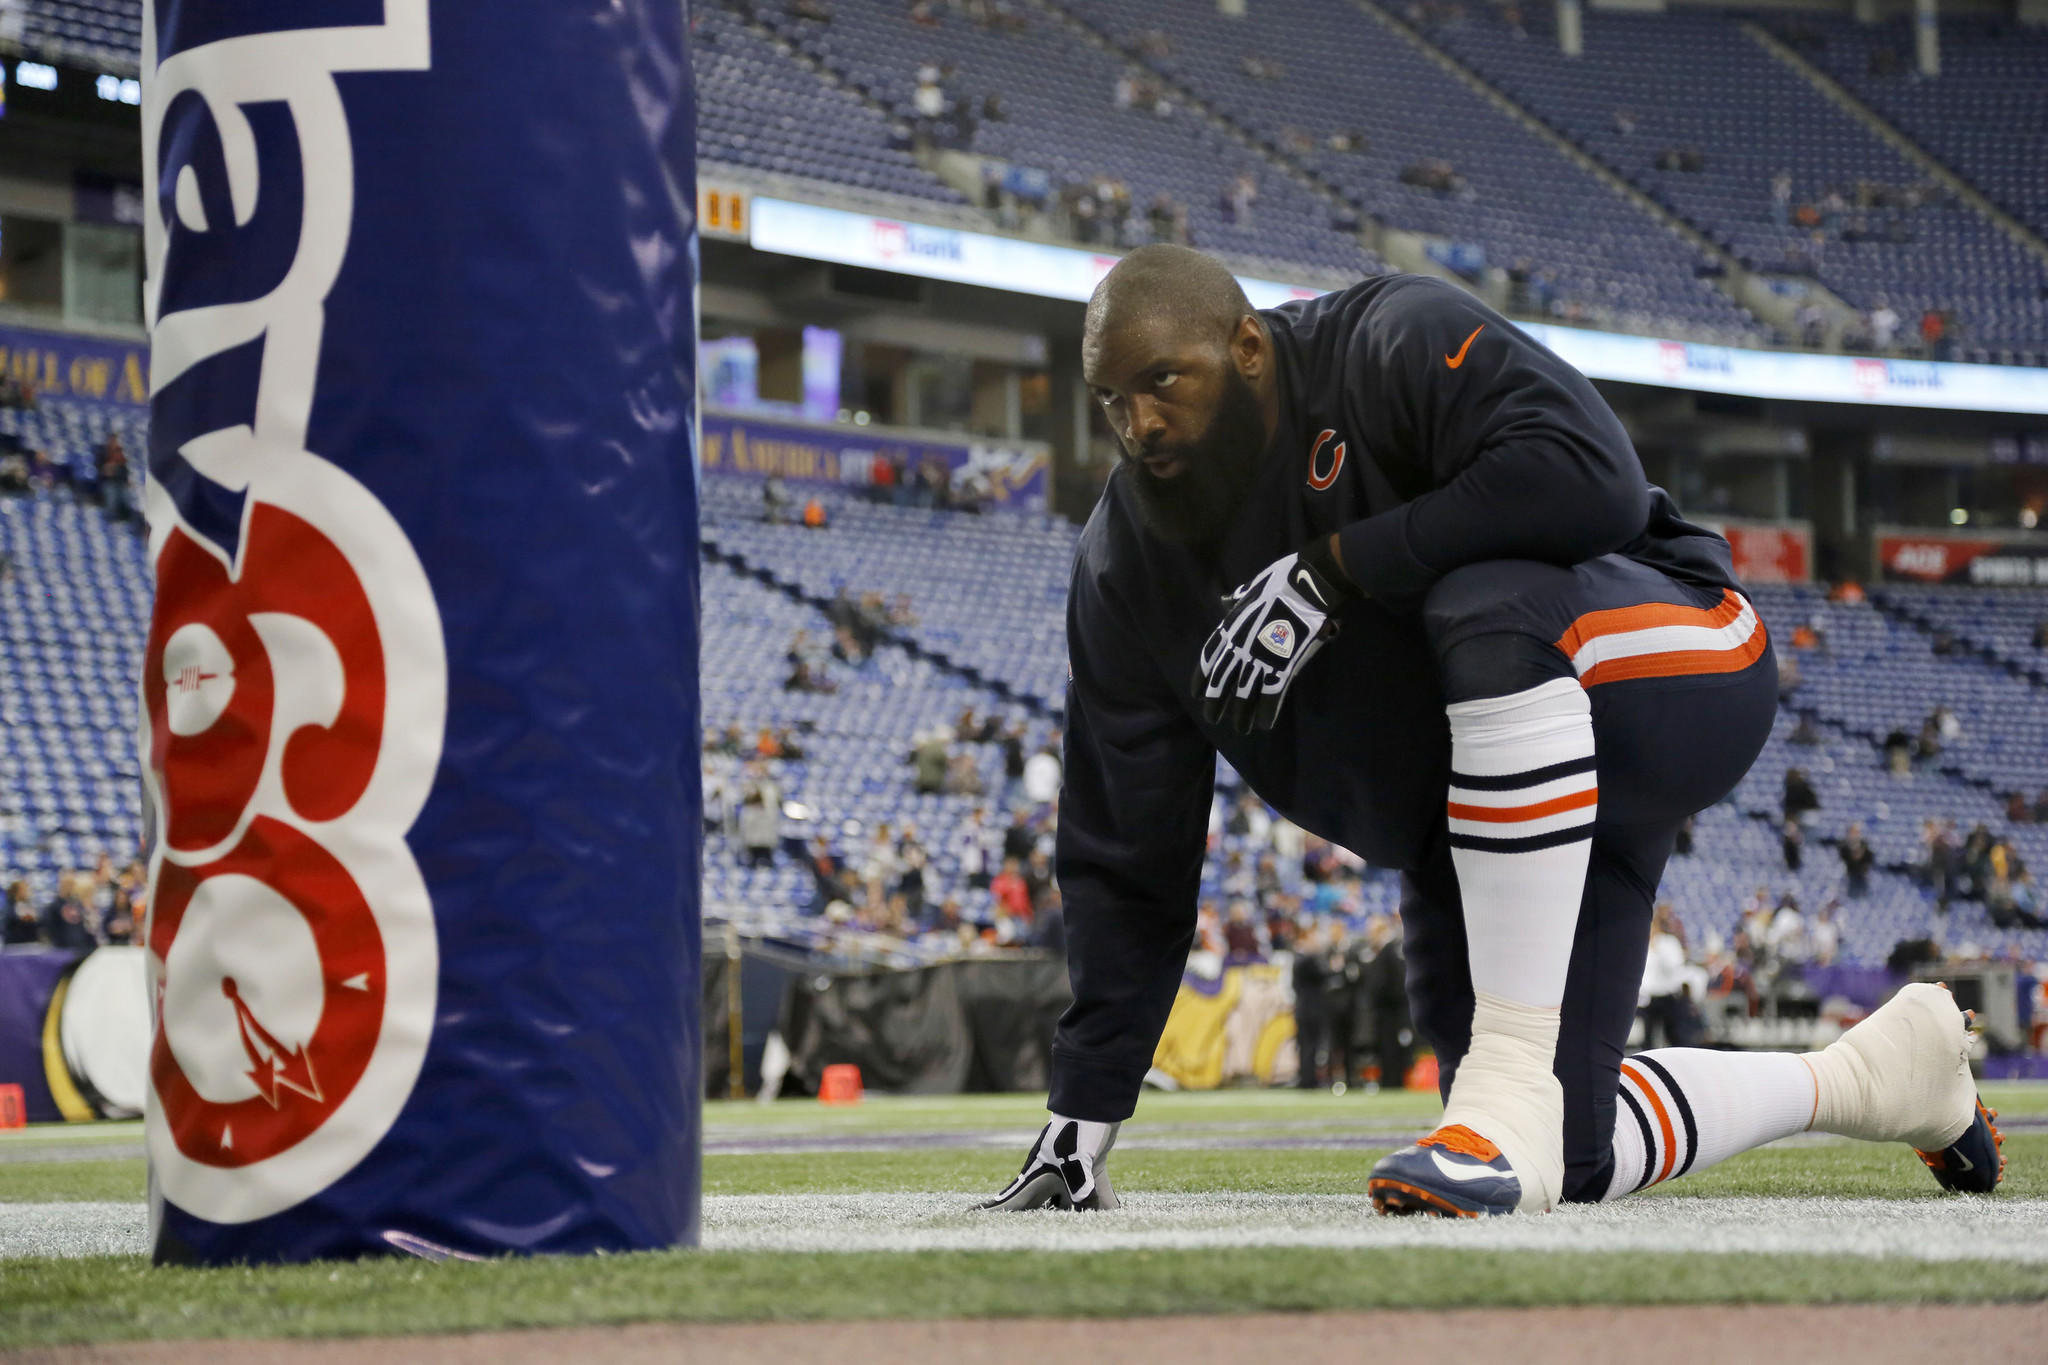 Jeremiah Ratliff during pregame warm-ups before facing the Vikings.